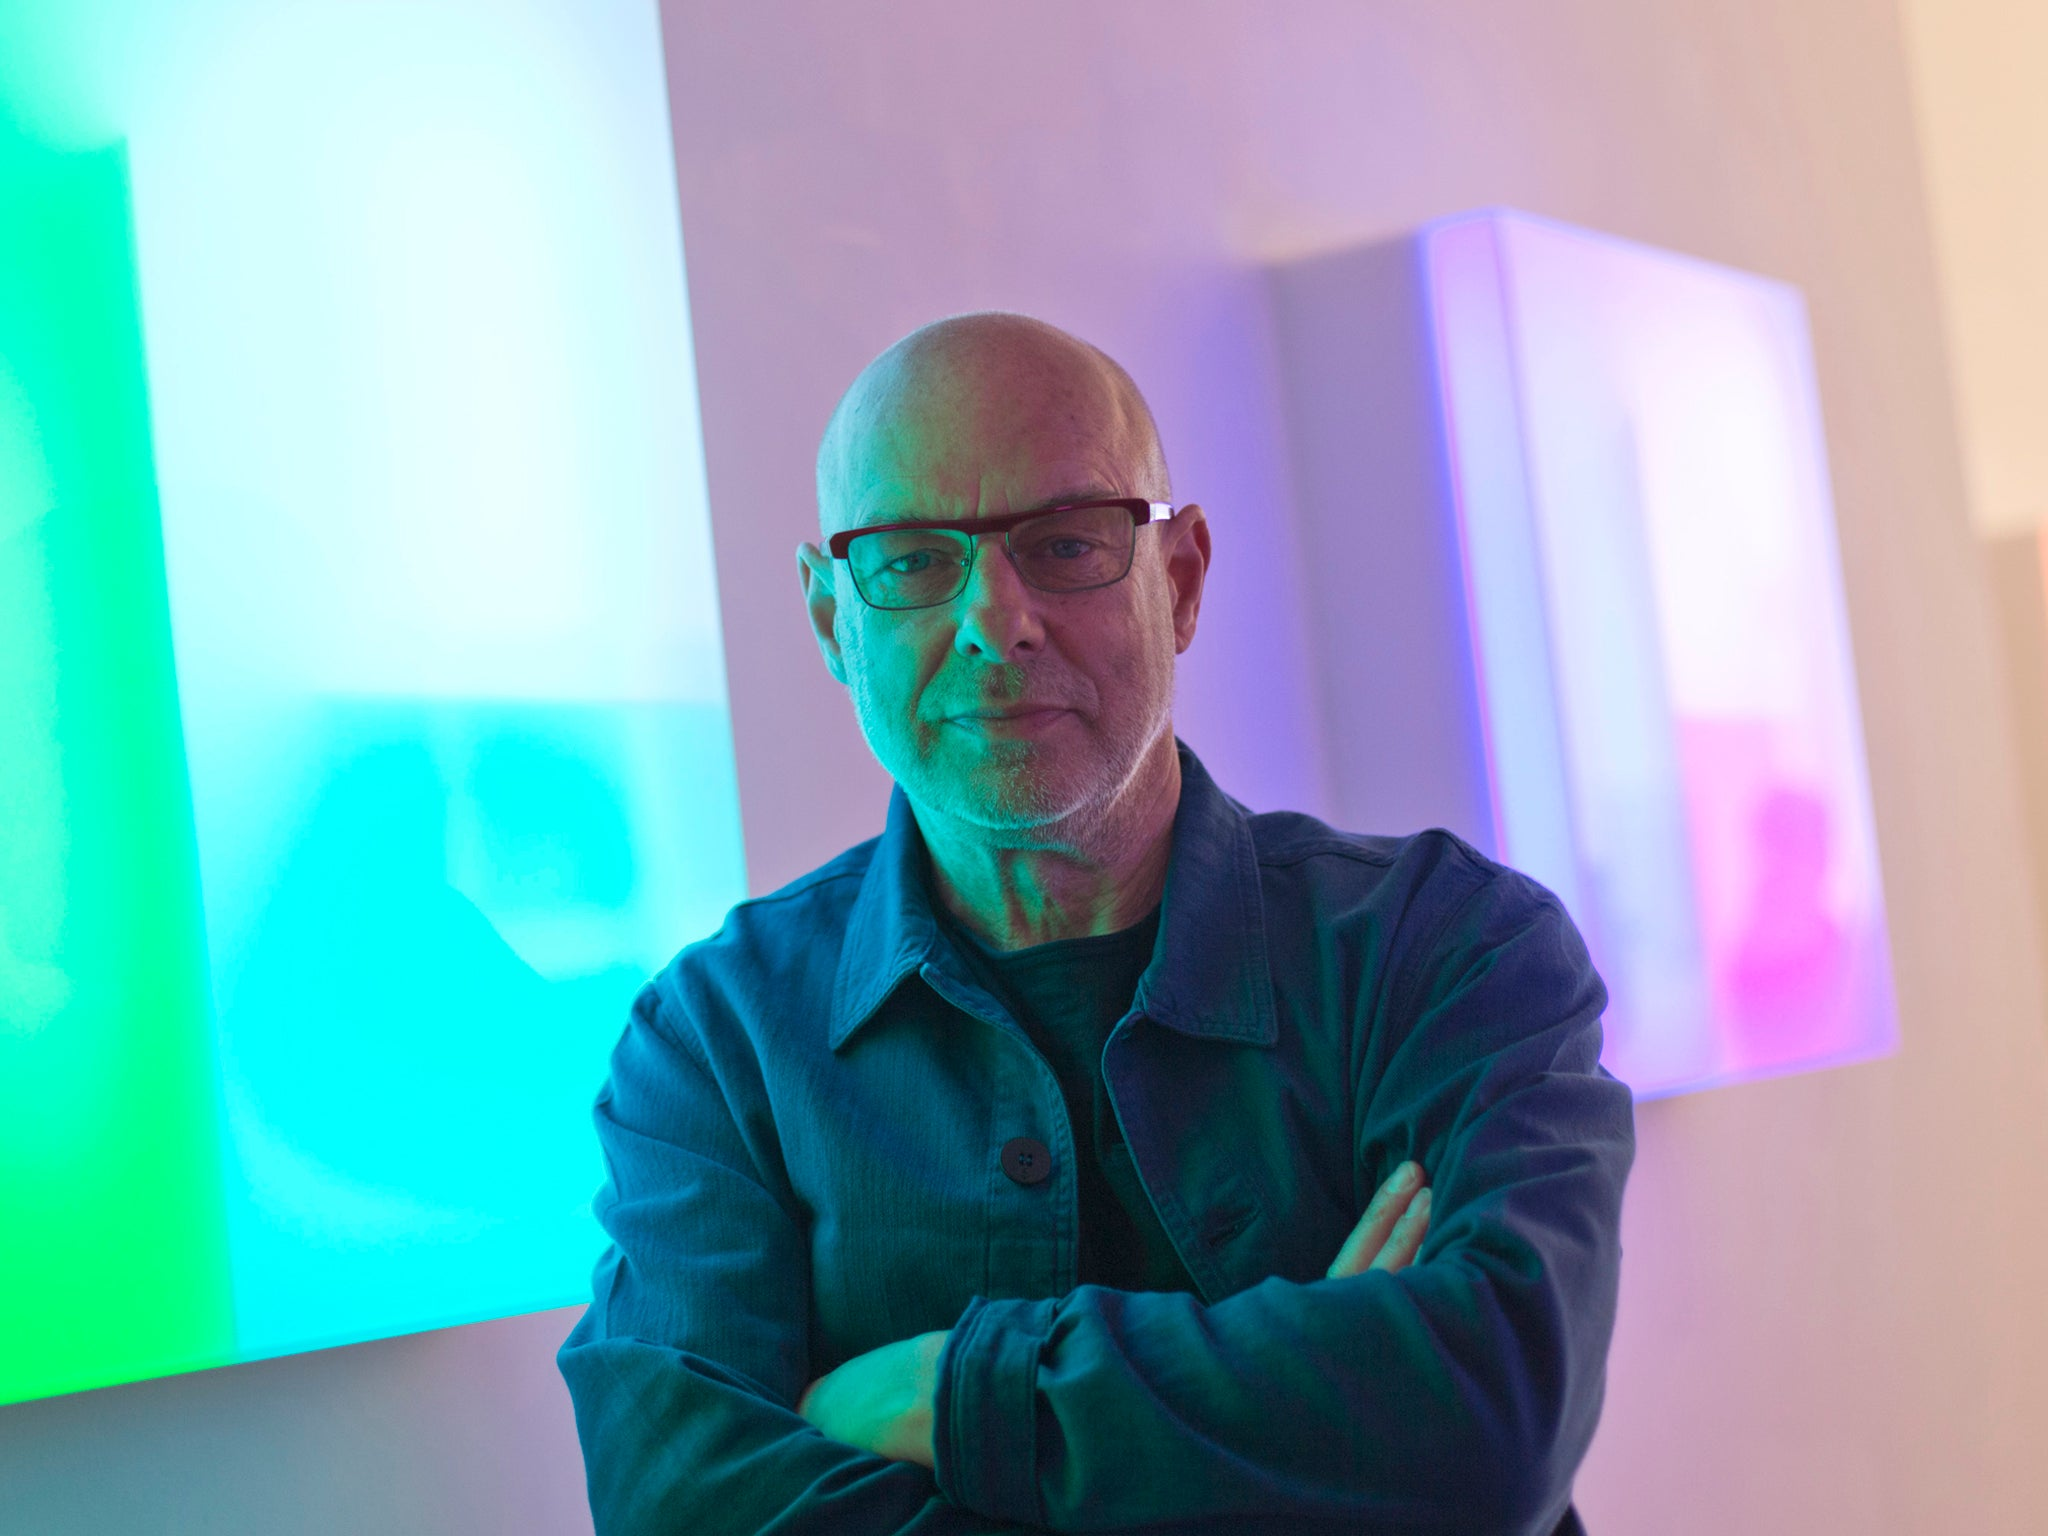 Brian Eno on immersive installations using video game technology: 'In terms of our understanding of what it is, we're right at the beginning'